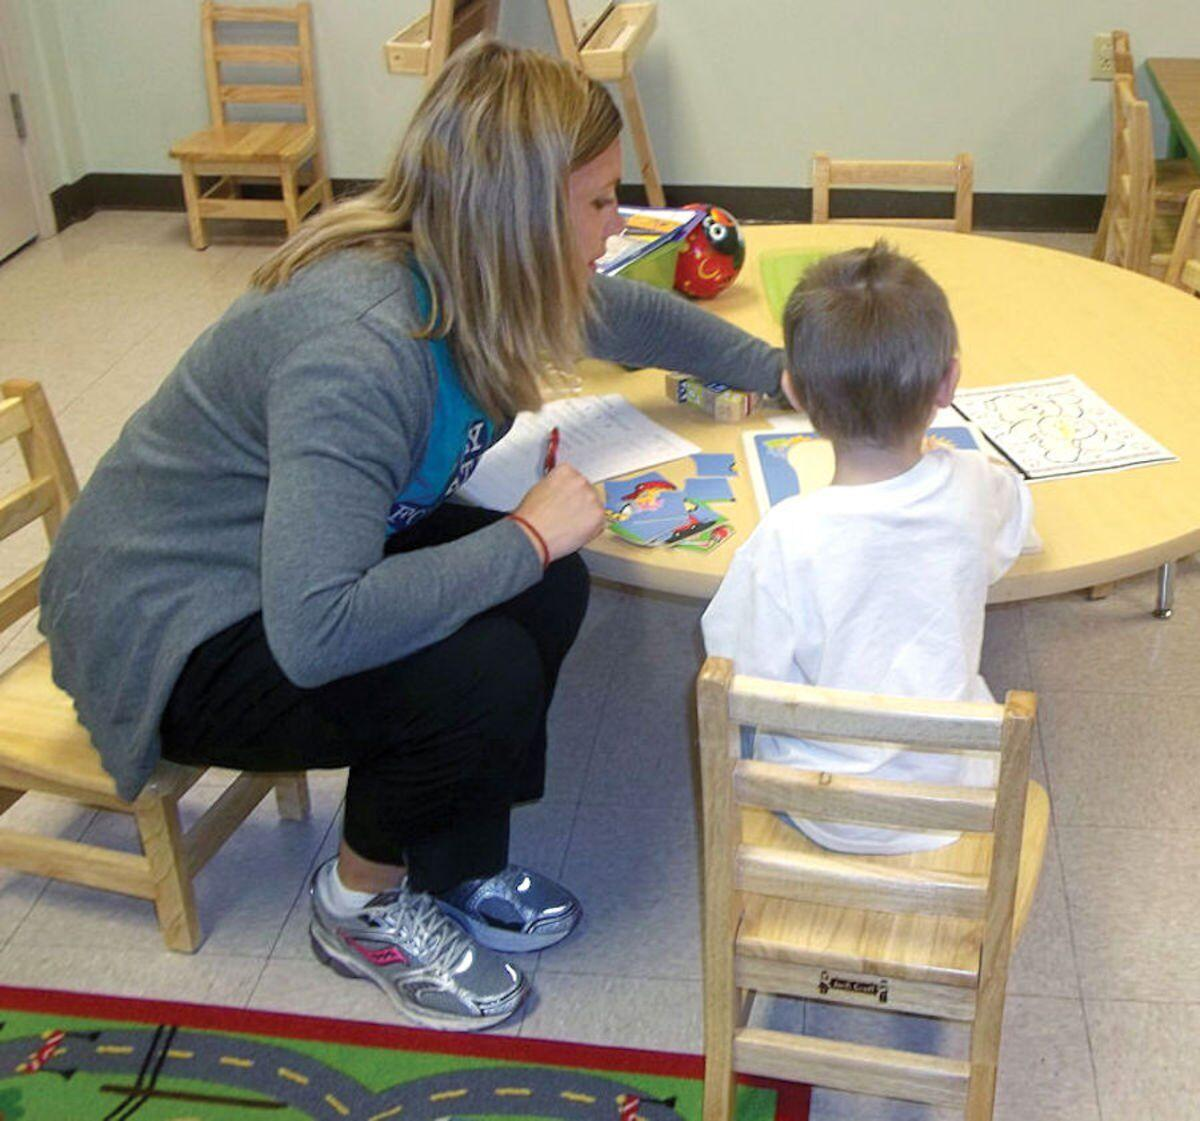 Autism Acceptance Month aims to improve understanding of autism spectrum disorders